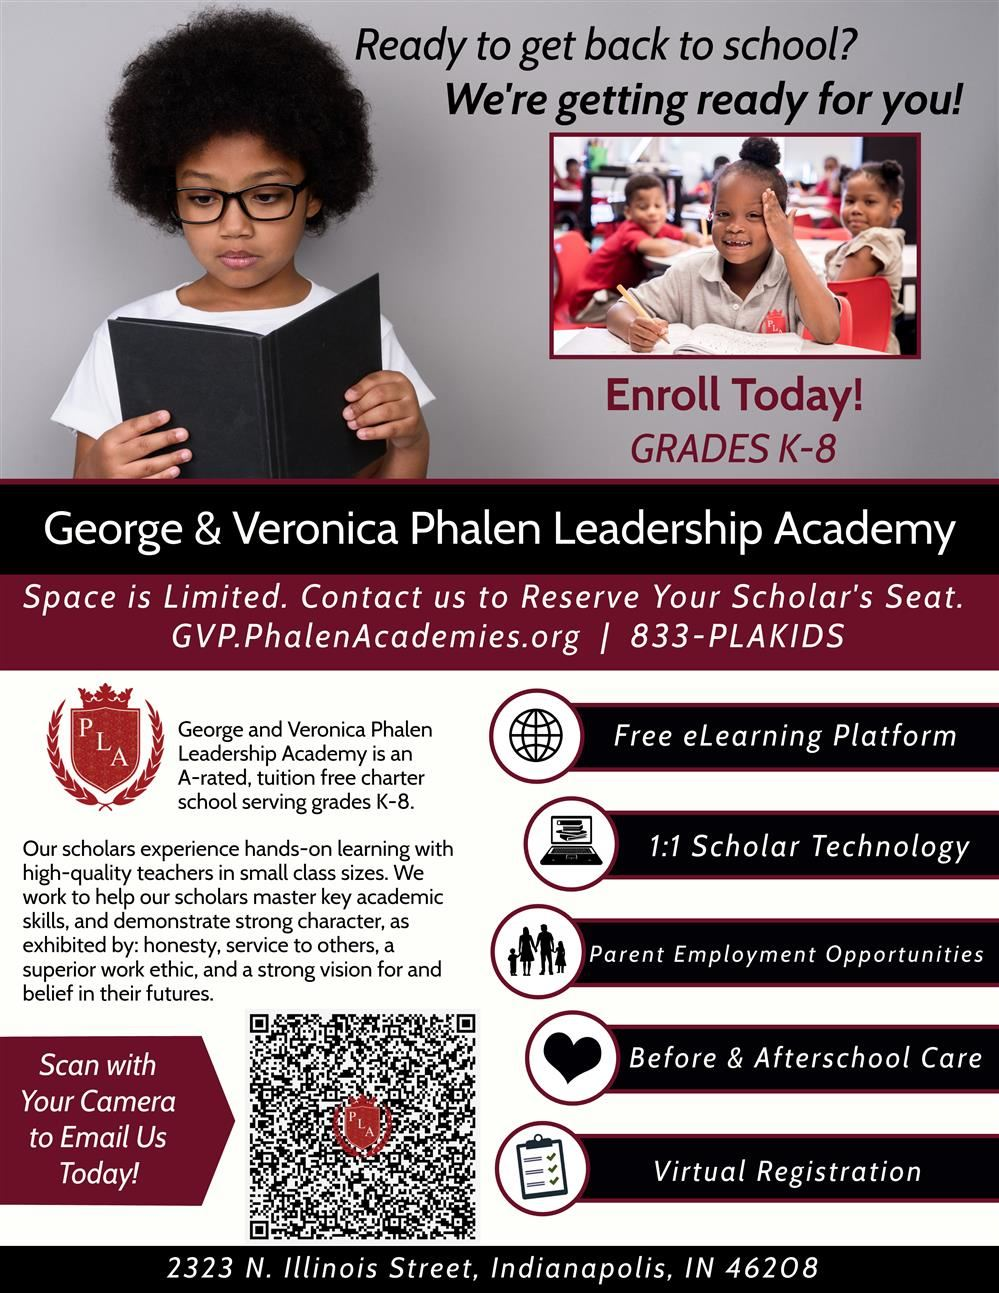 George and Veronica Phalen Leadership Academies